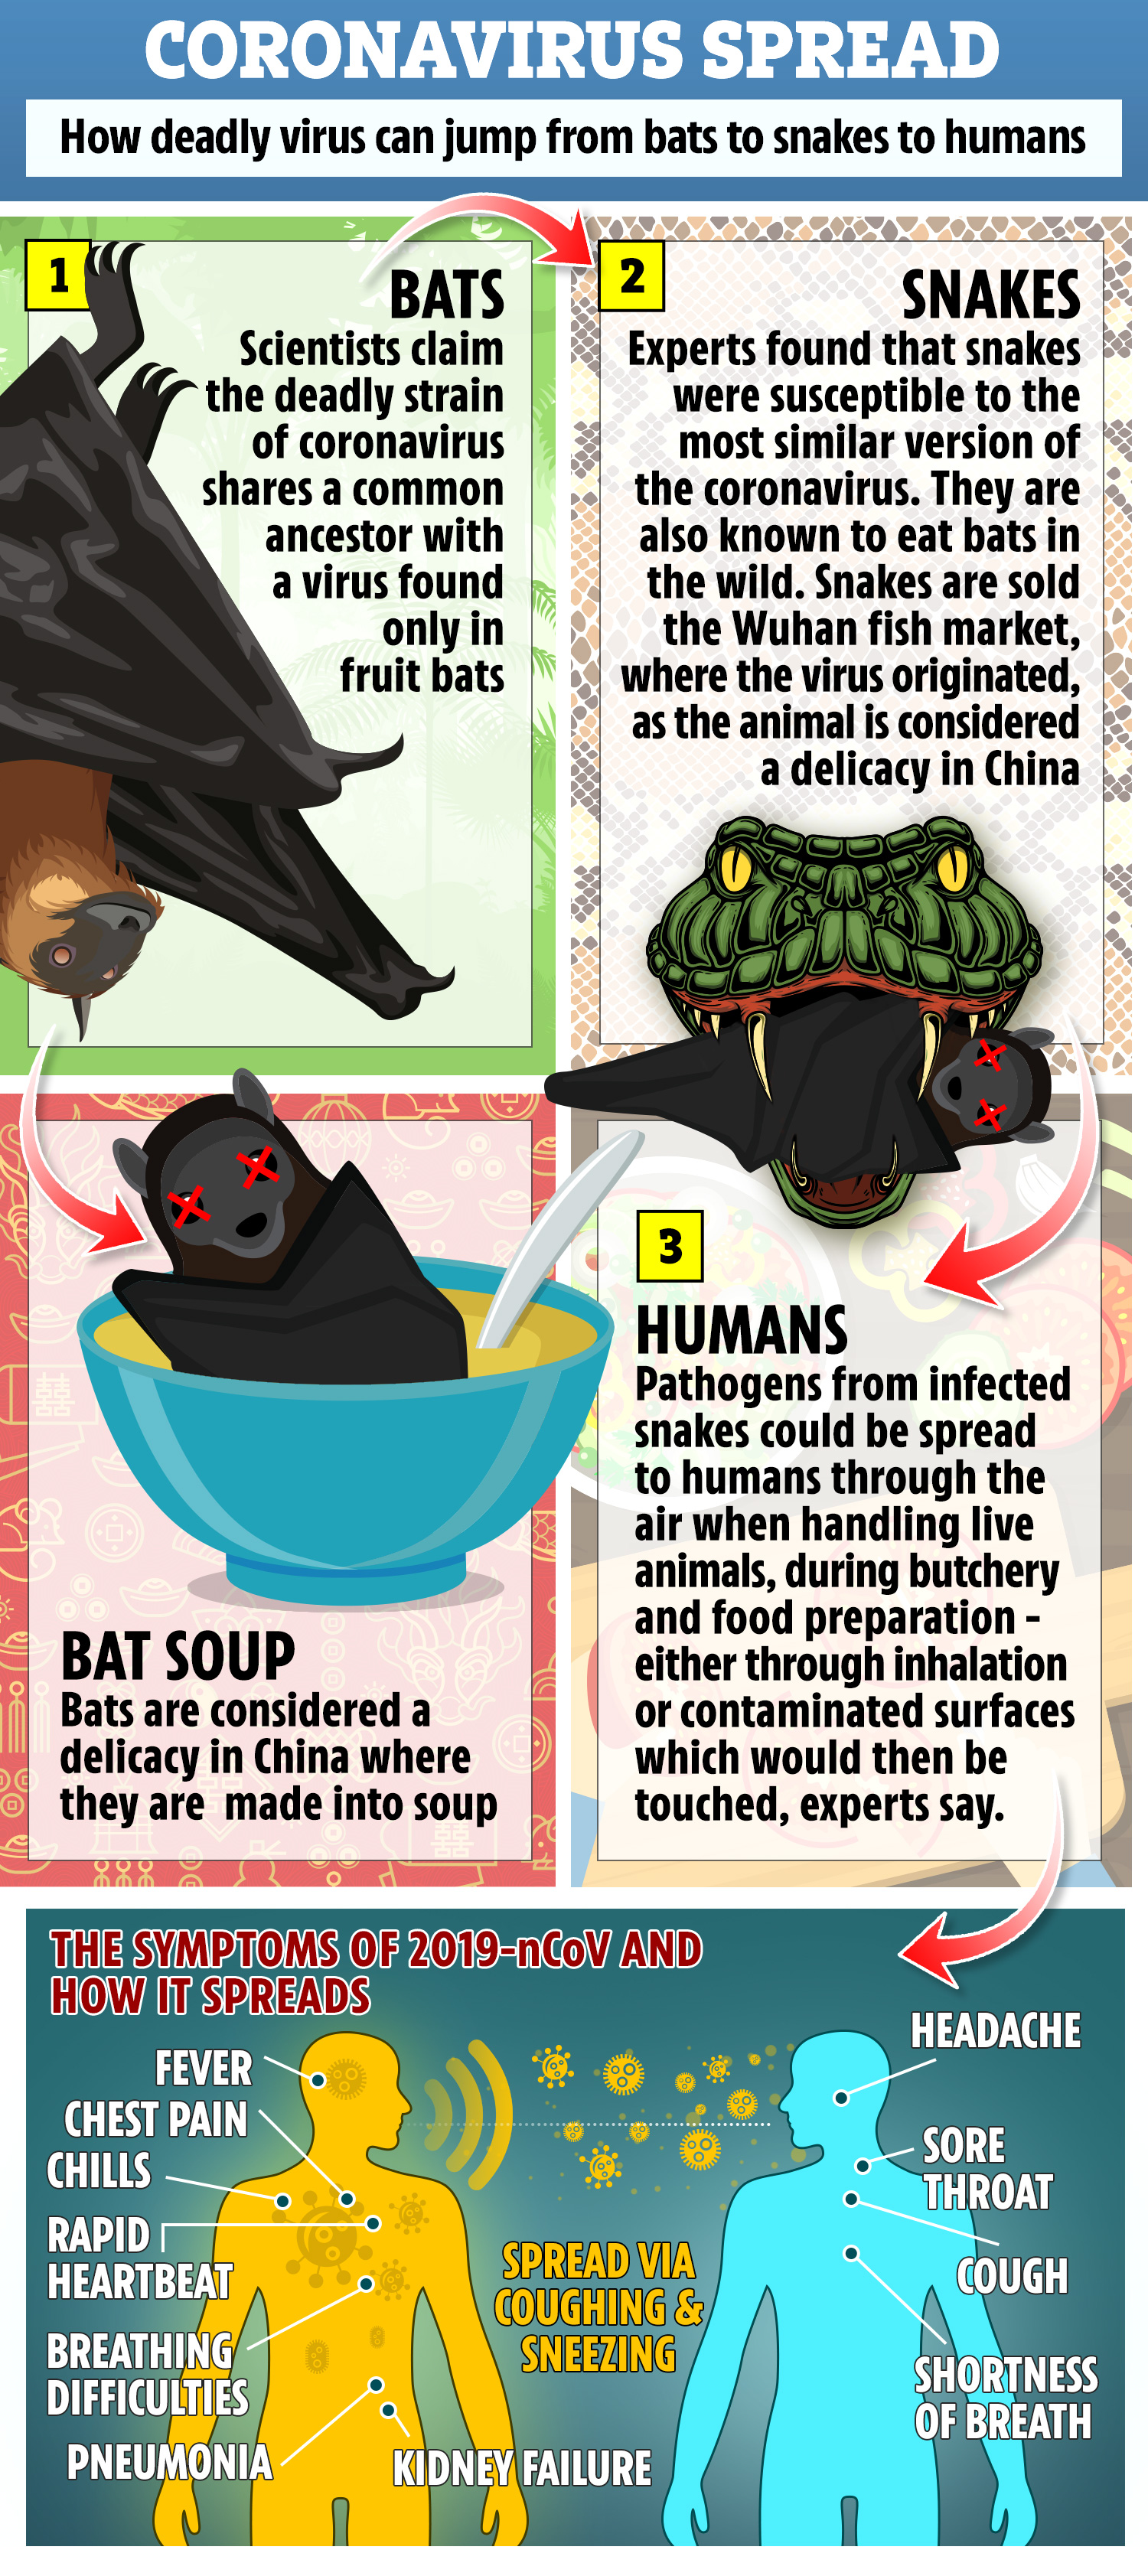 Coronavirus outbreak could be linked to bat soup say scientists